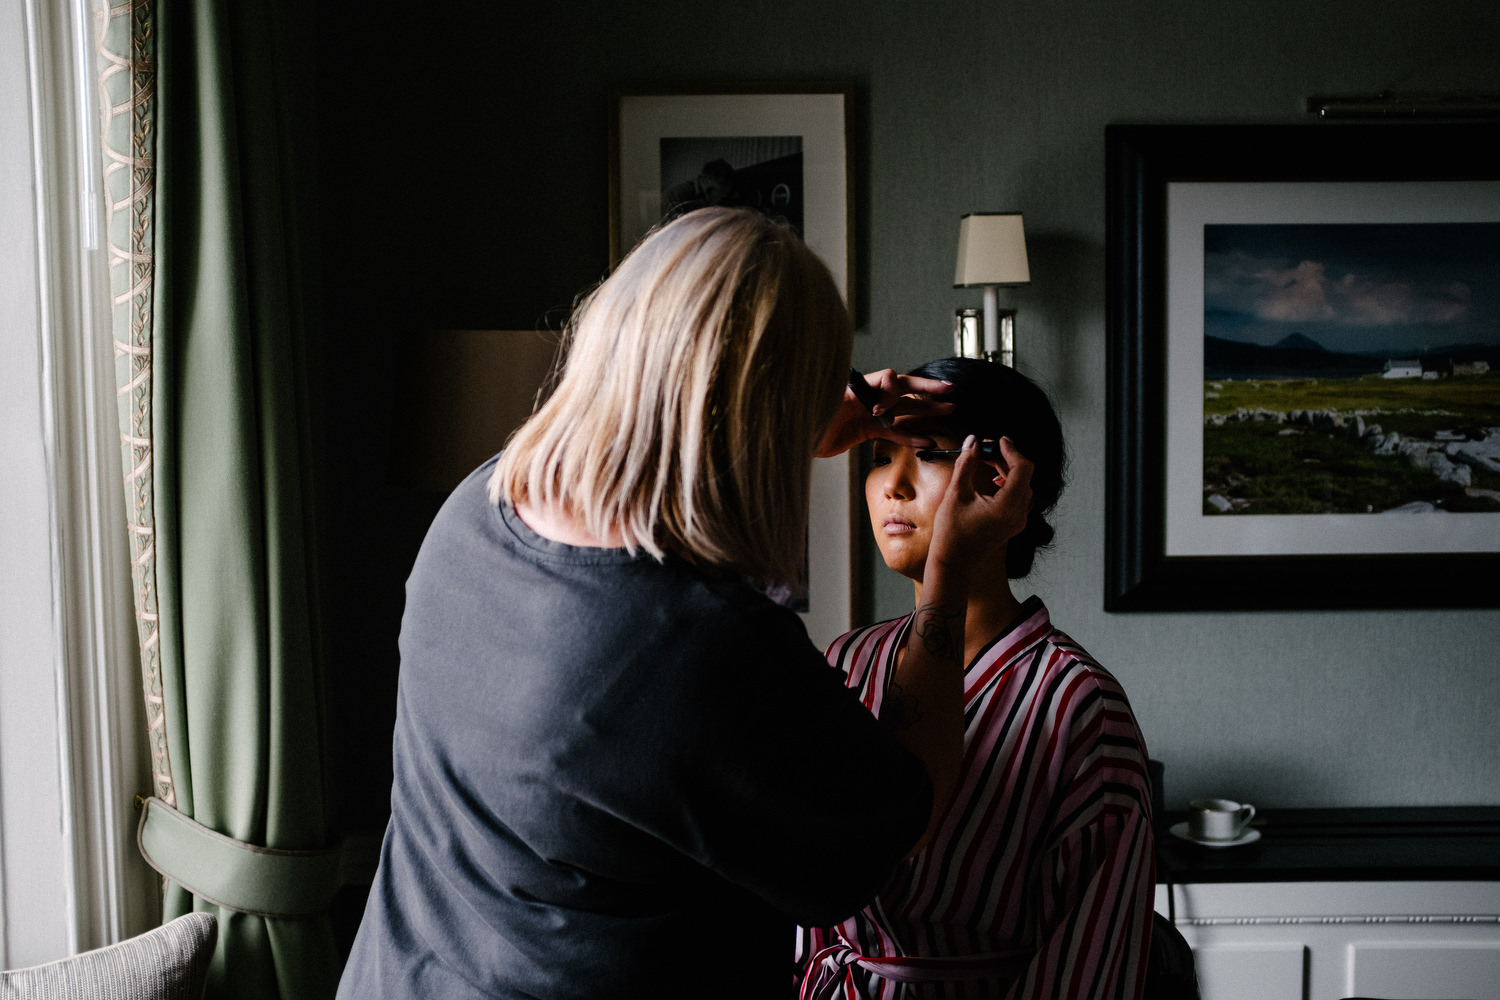 dmp0089_preparation_photographer_dublin_david_mcclelland_photography_shelbourne_documentary_wedding